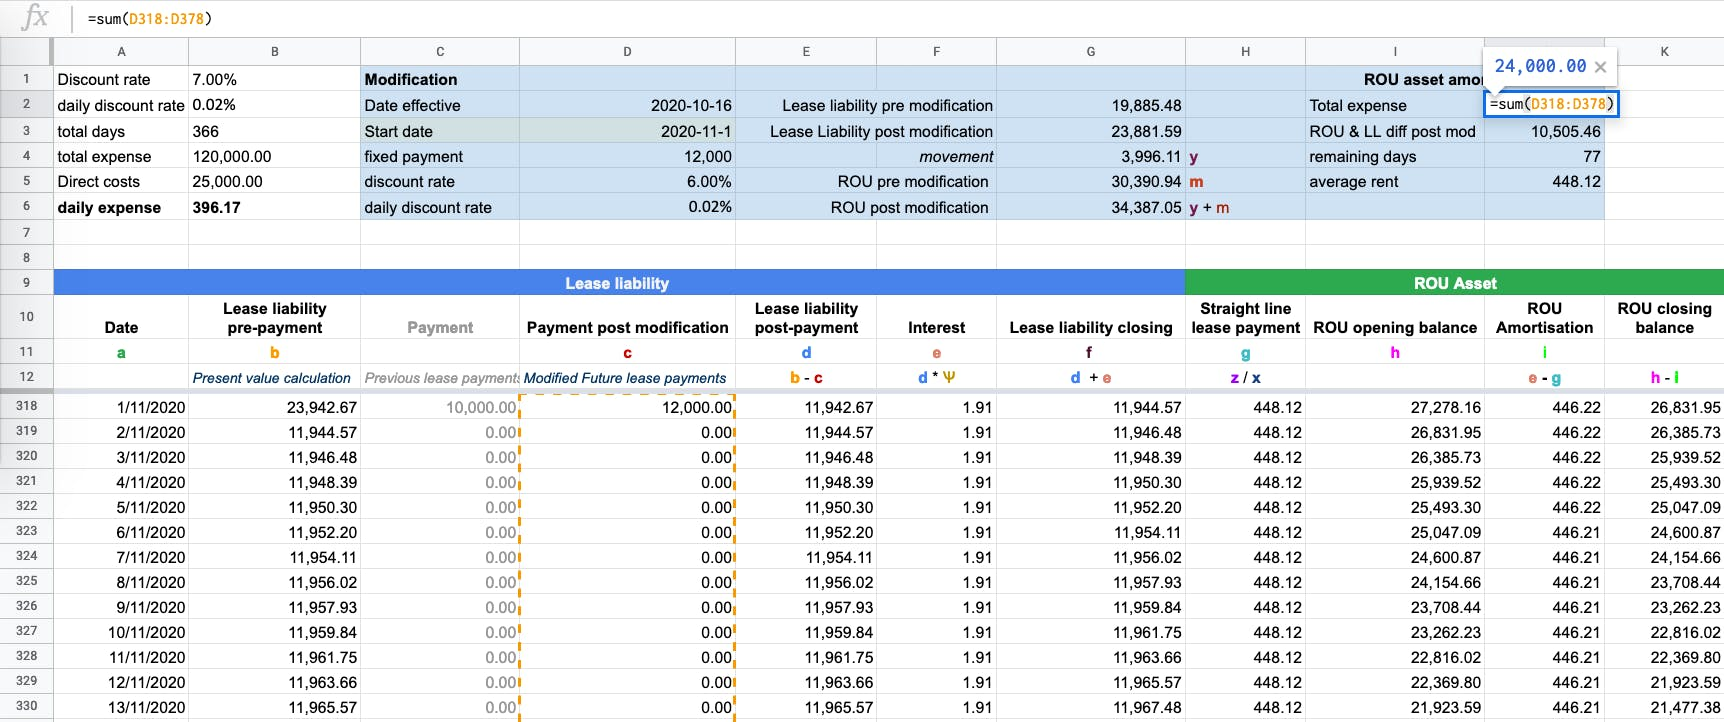 Updating the remaining lease expense based on the modification